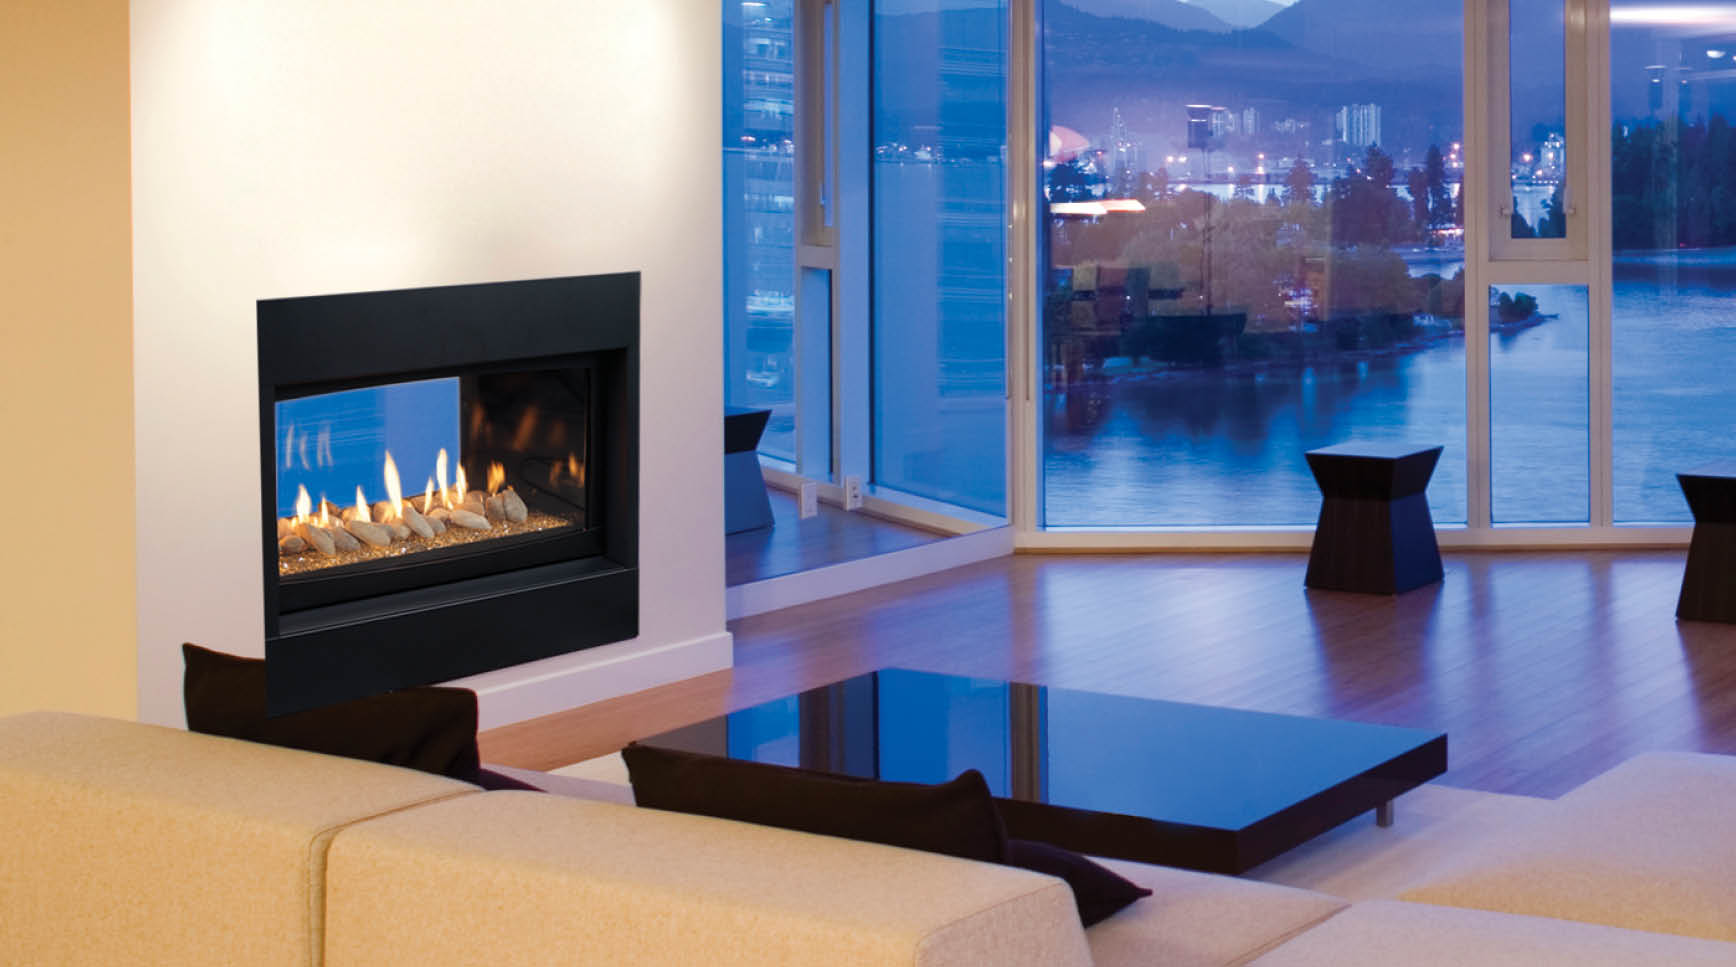 Monessen Serenade See-Thru Direct Vent Gas Fireplace for your home. Our fireplace store has a gas fireplace & more in San Jose